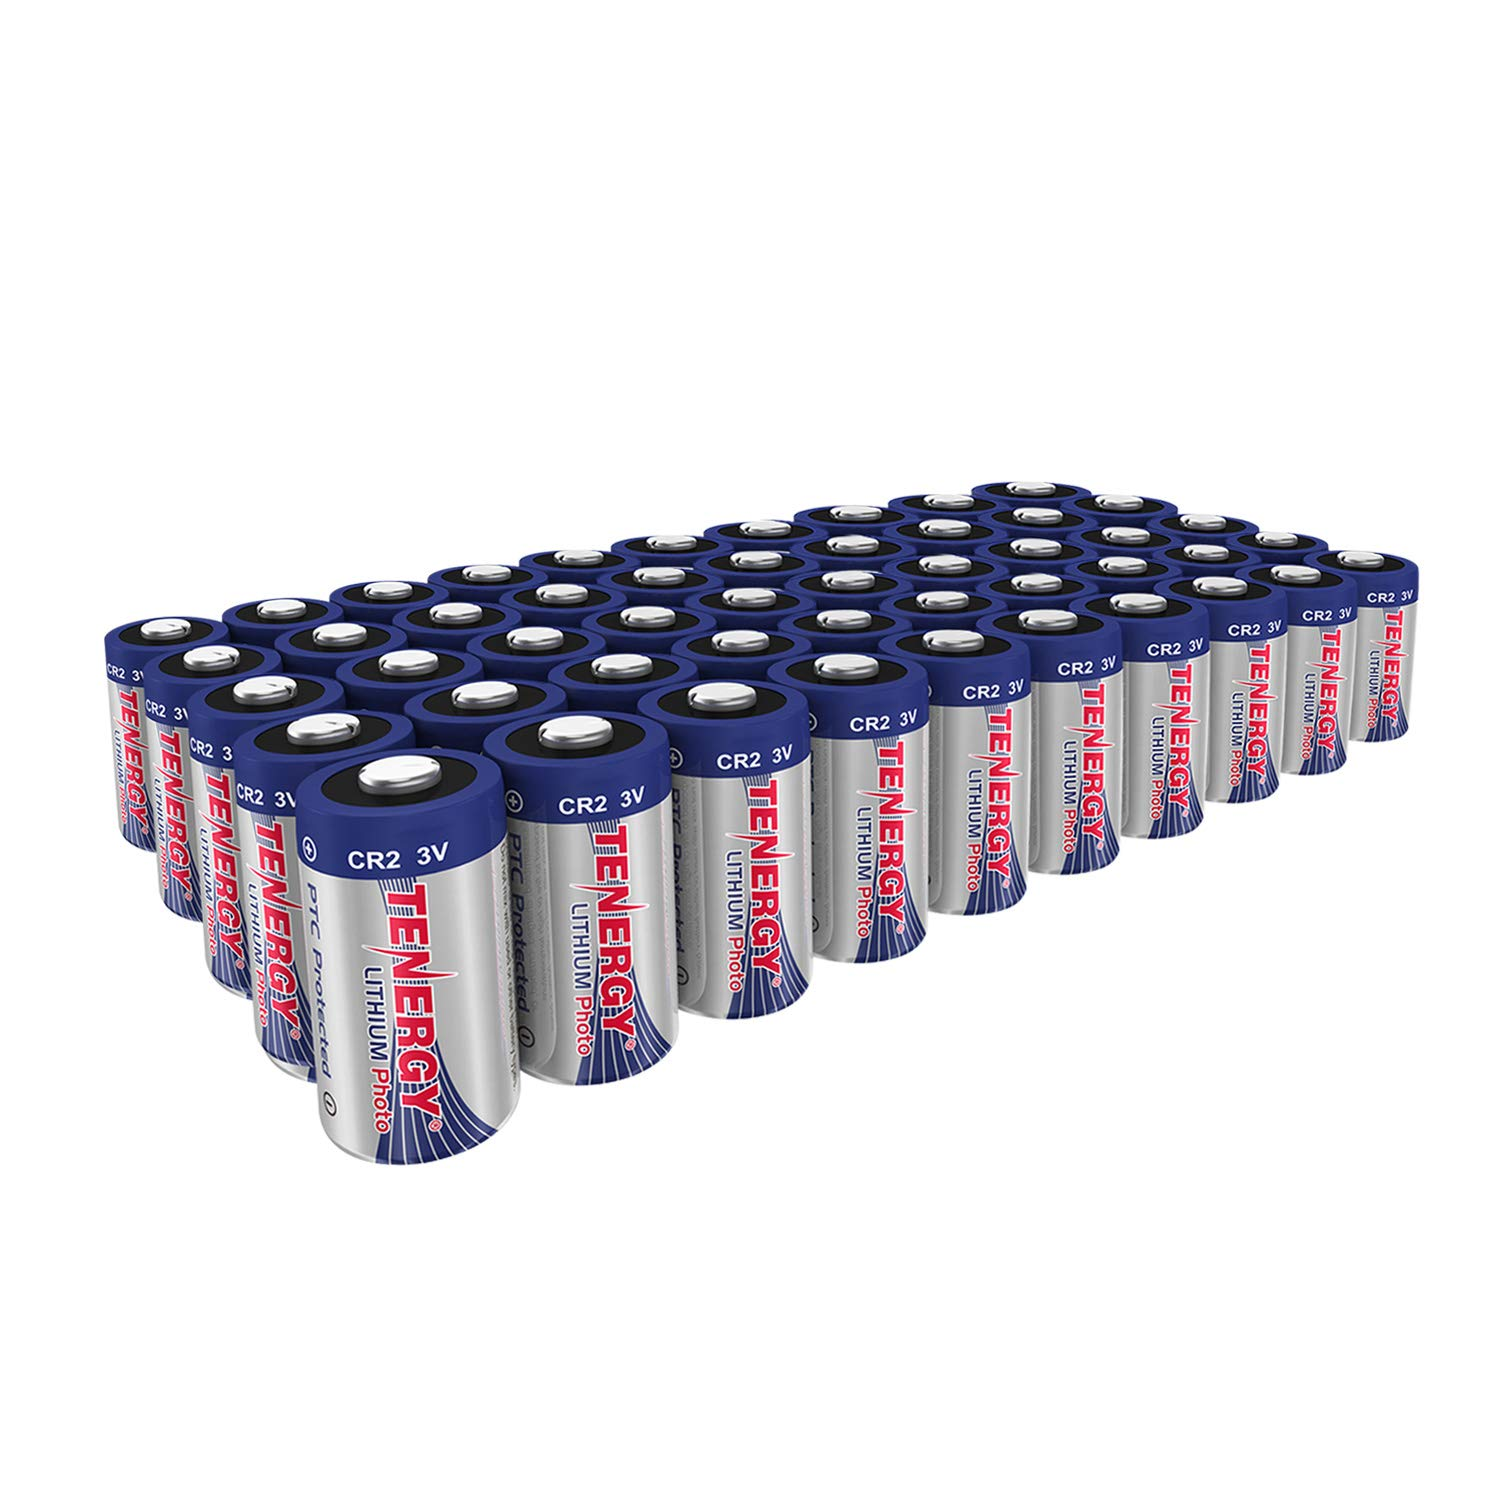 Tenergy CR2 3V Lithium Battery Non-Rechargeable PTC Protected High Performance CR2 Batteries for Flashlight, Digital Cameras, Toys, Alarm Systems (Not For Arlo Camera) 50PCS